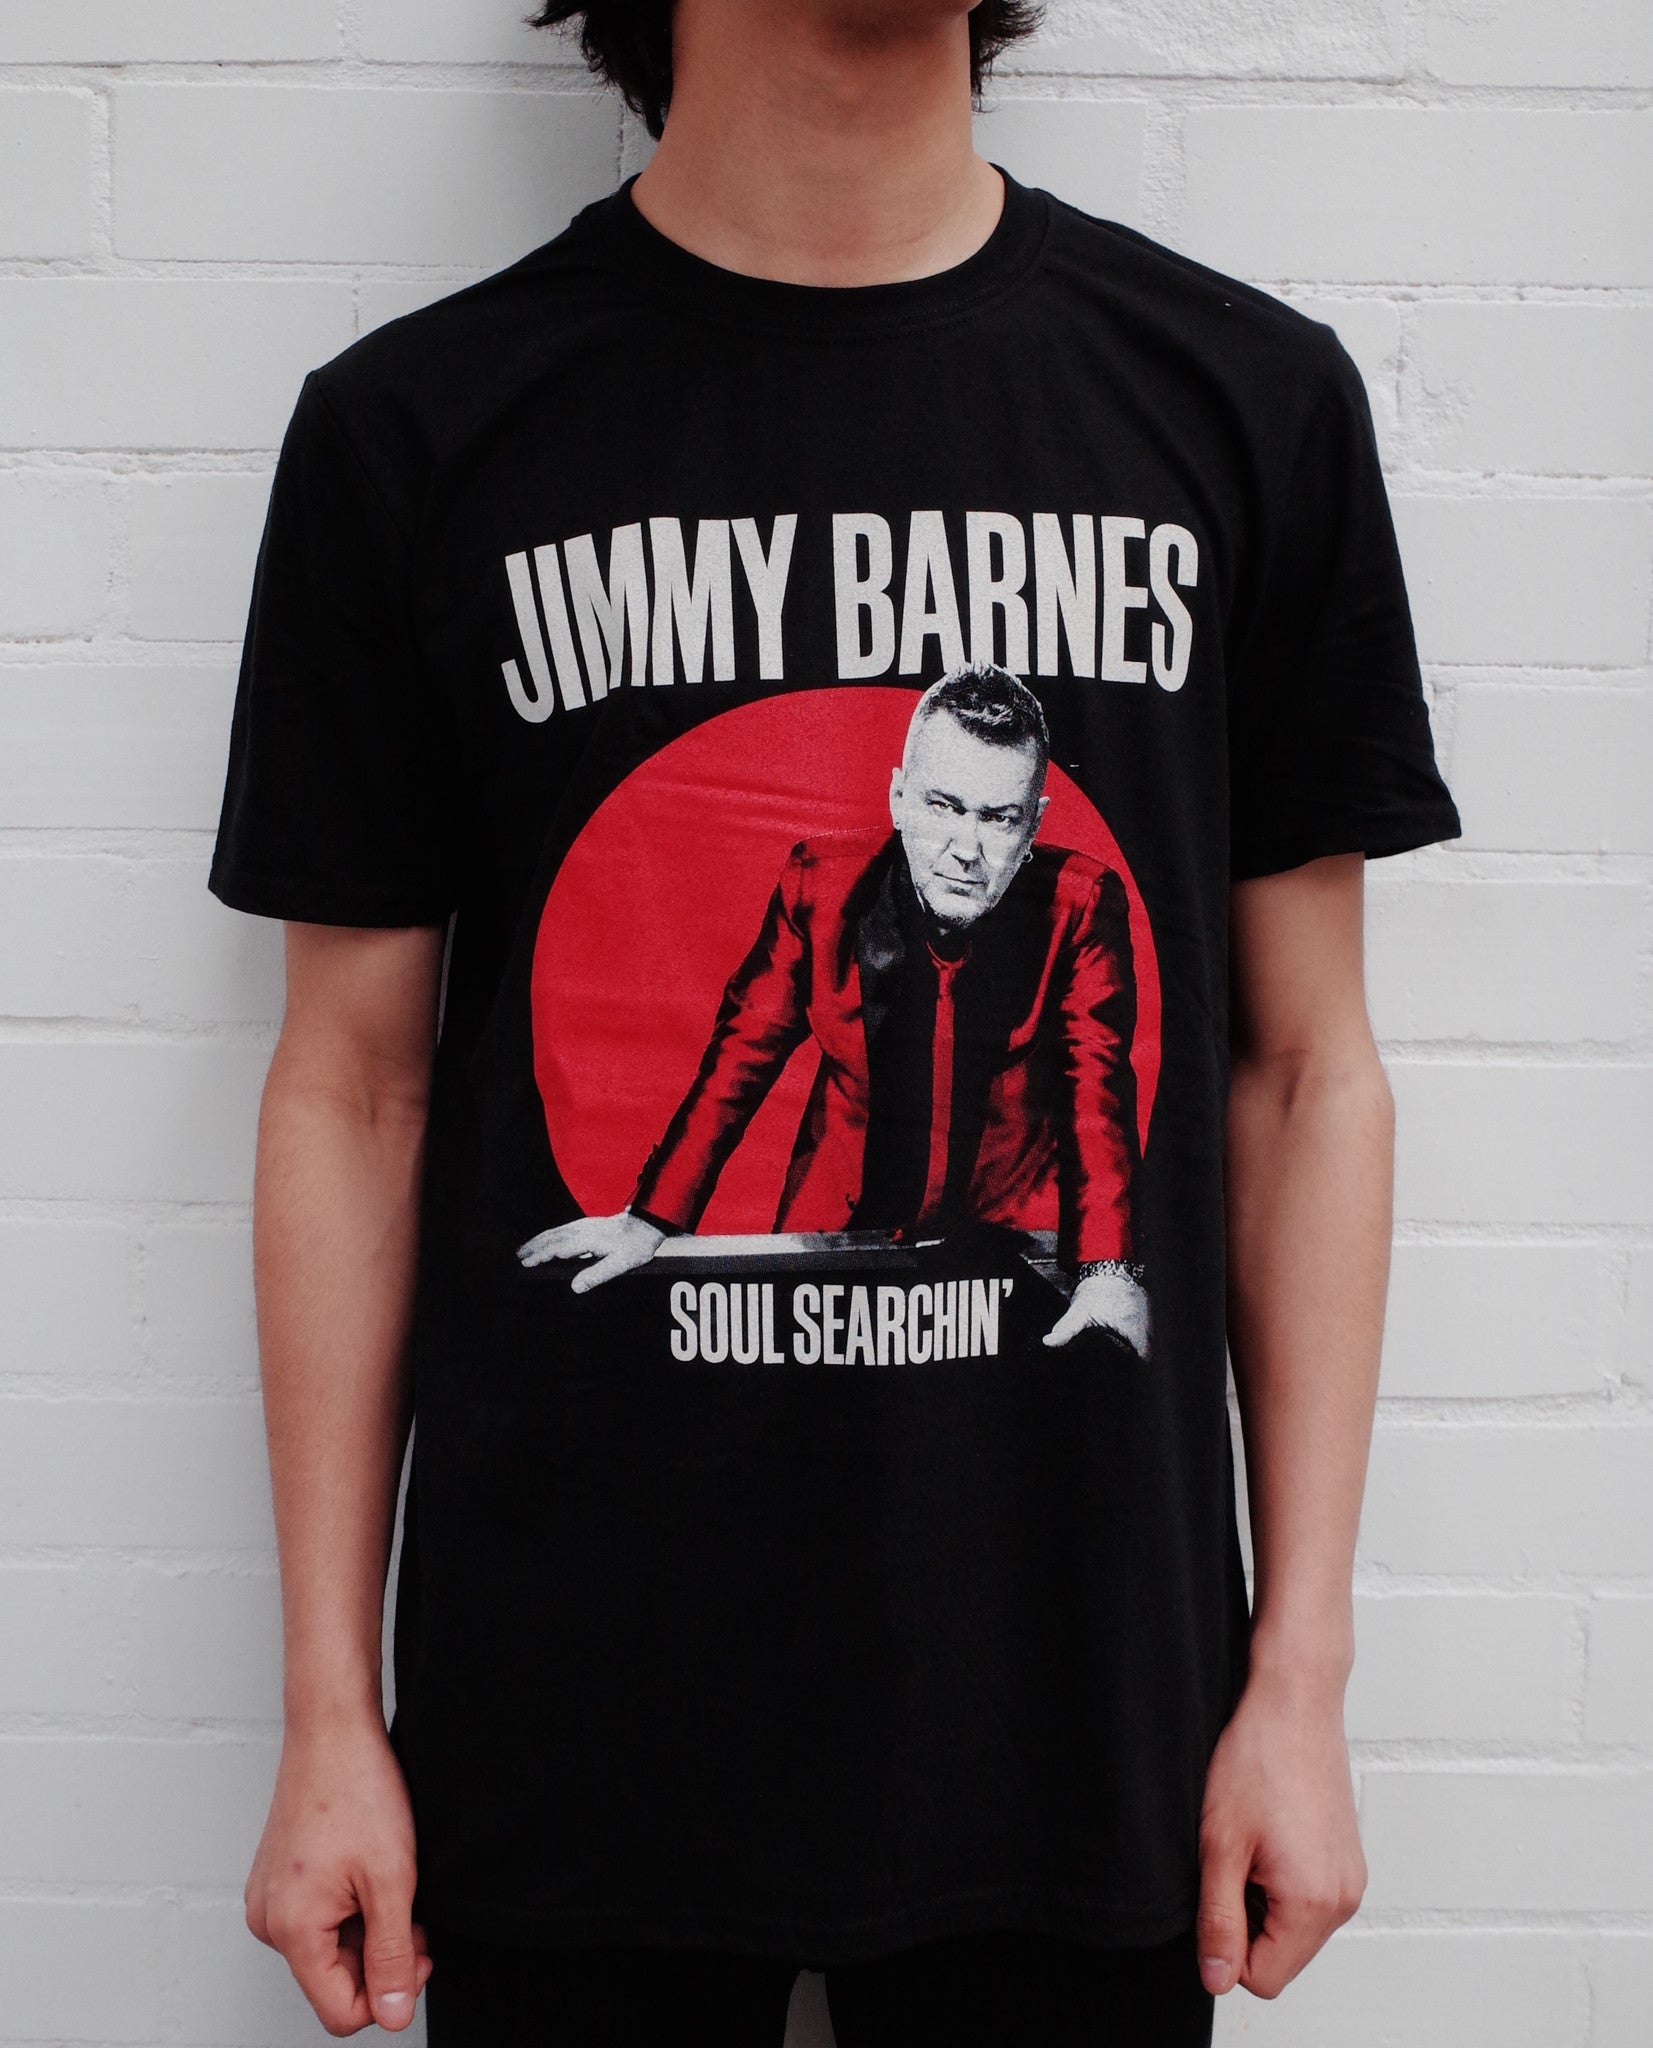 Black 'Soul Searchin' Tour T-shirt - Jimmy Barnes Online Store